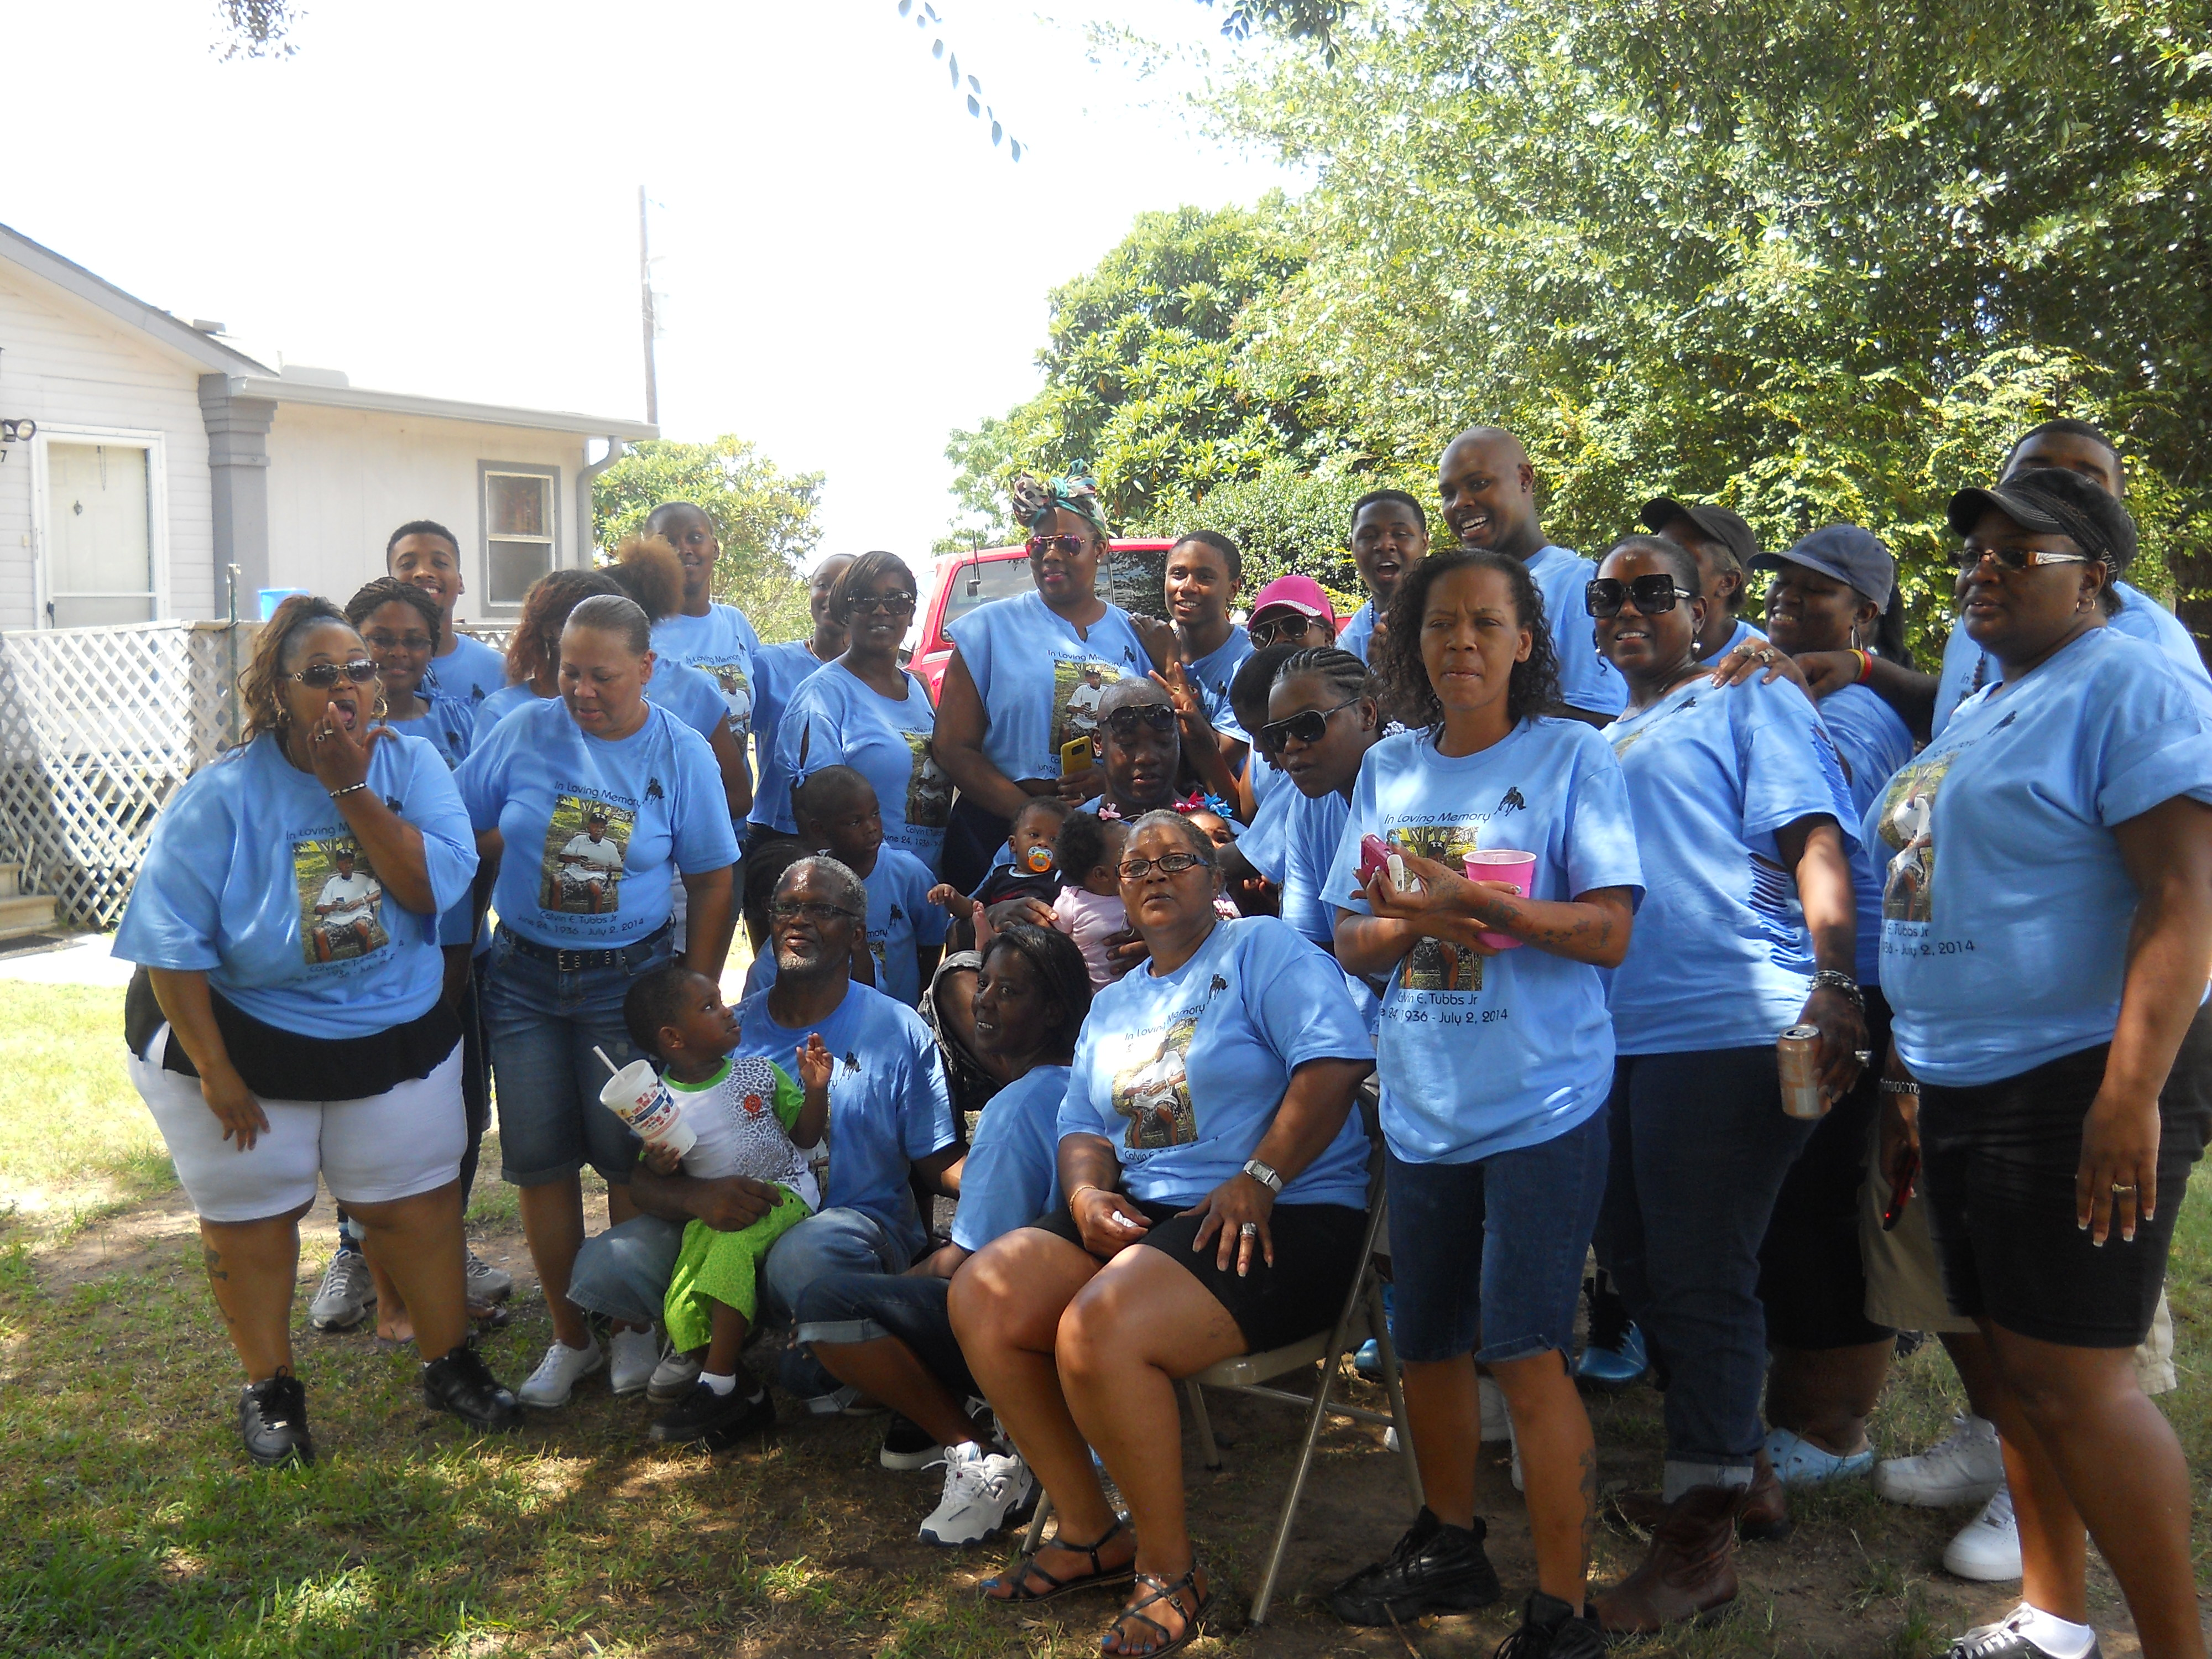 Design your own t-shirt for family reunion - Tubbs Family Reunion 2014 T Shirt Photo